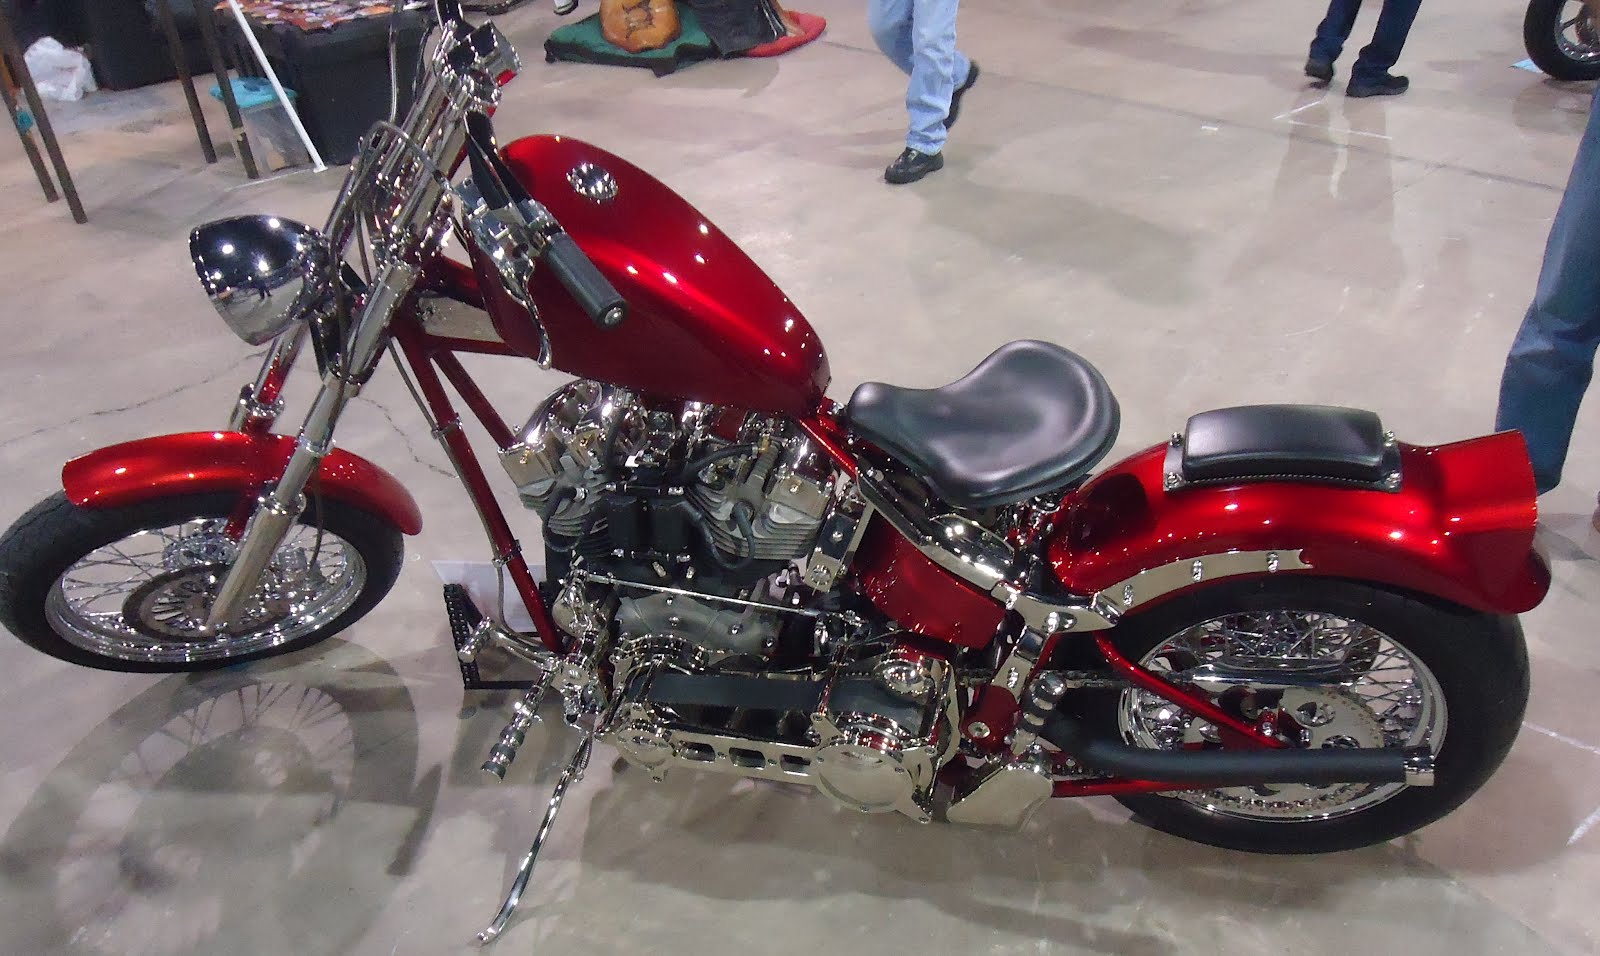 Tear it up, fix it, repeat: Oklahoma City 2012 Motorcycle Show